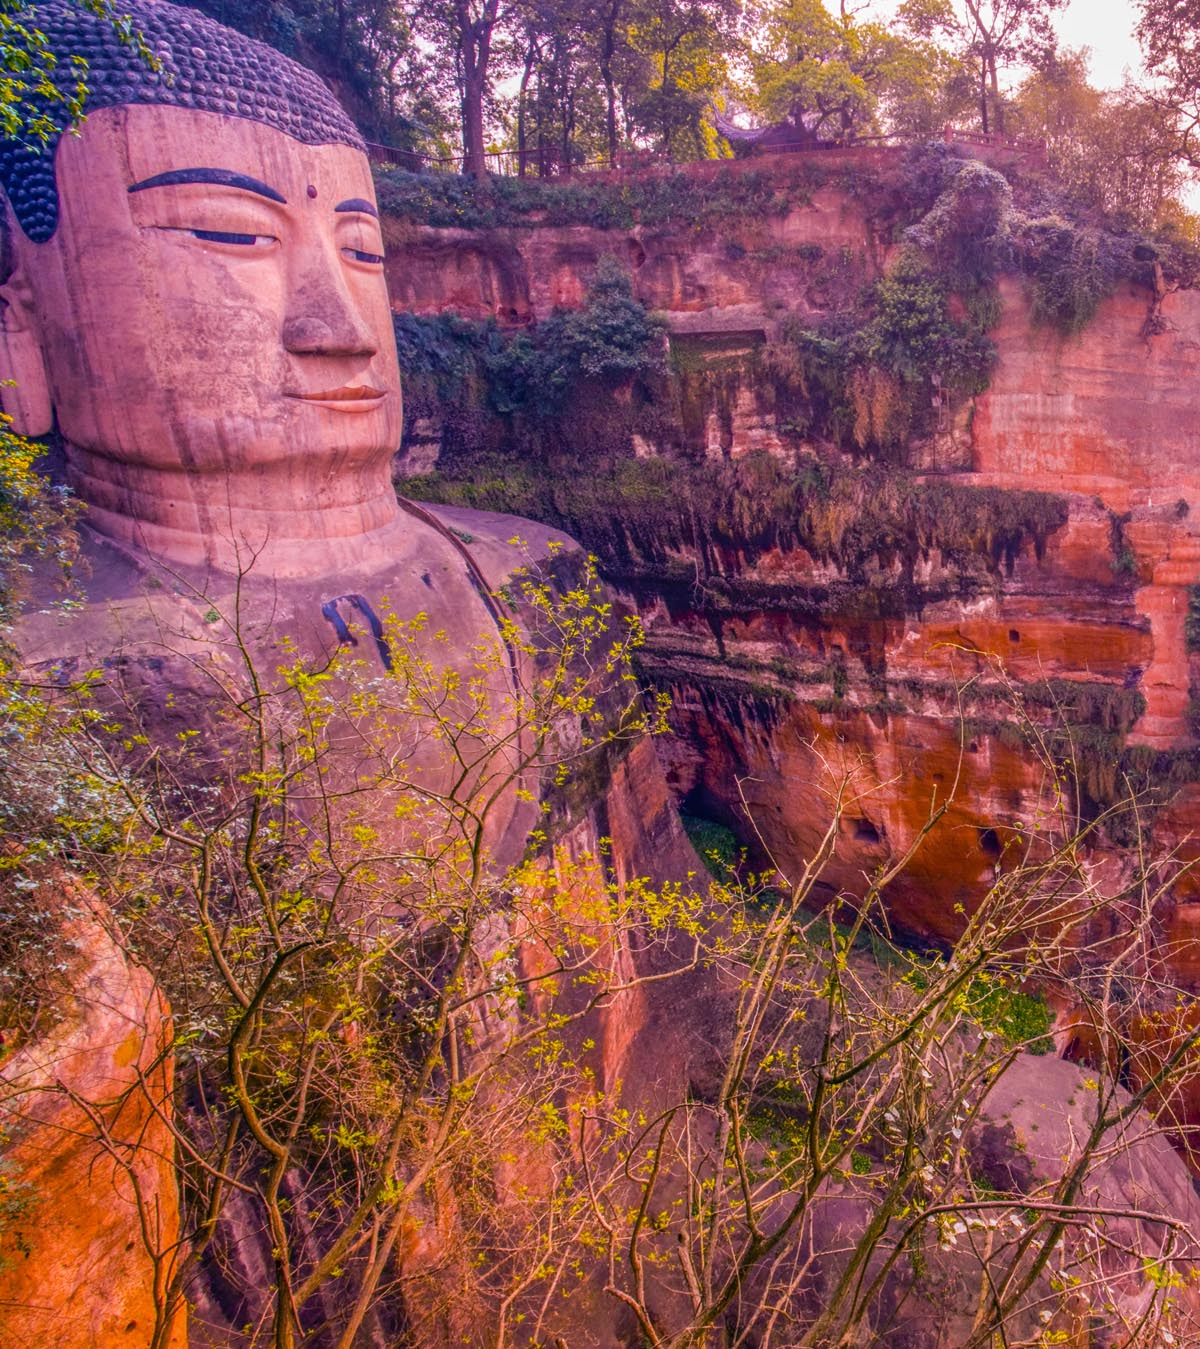 Leshan Great Buddha statue Sichuan Province, China photographed by Tom Till